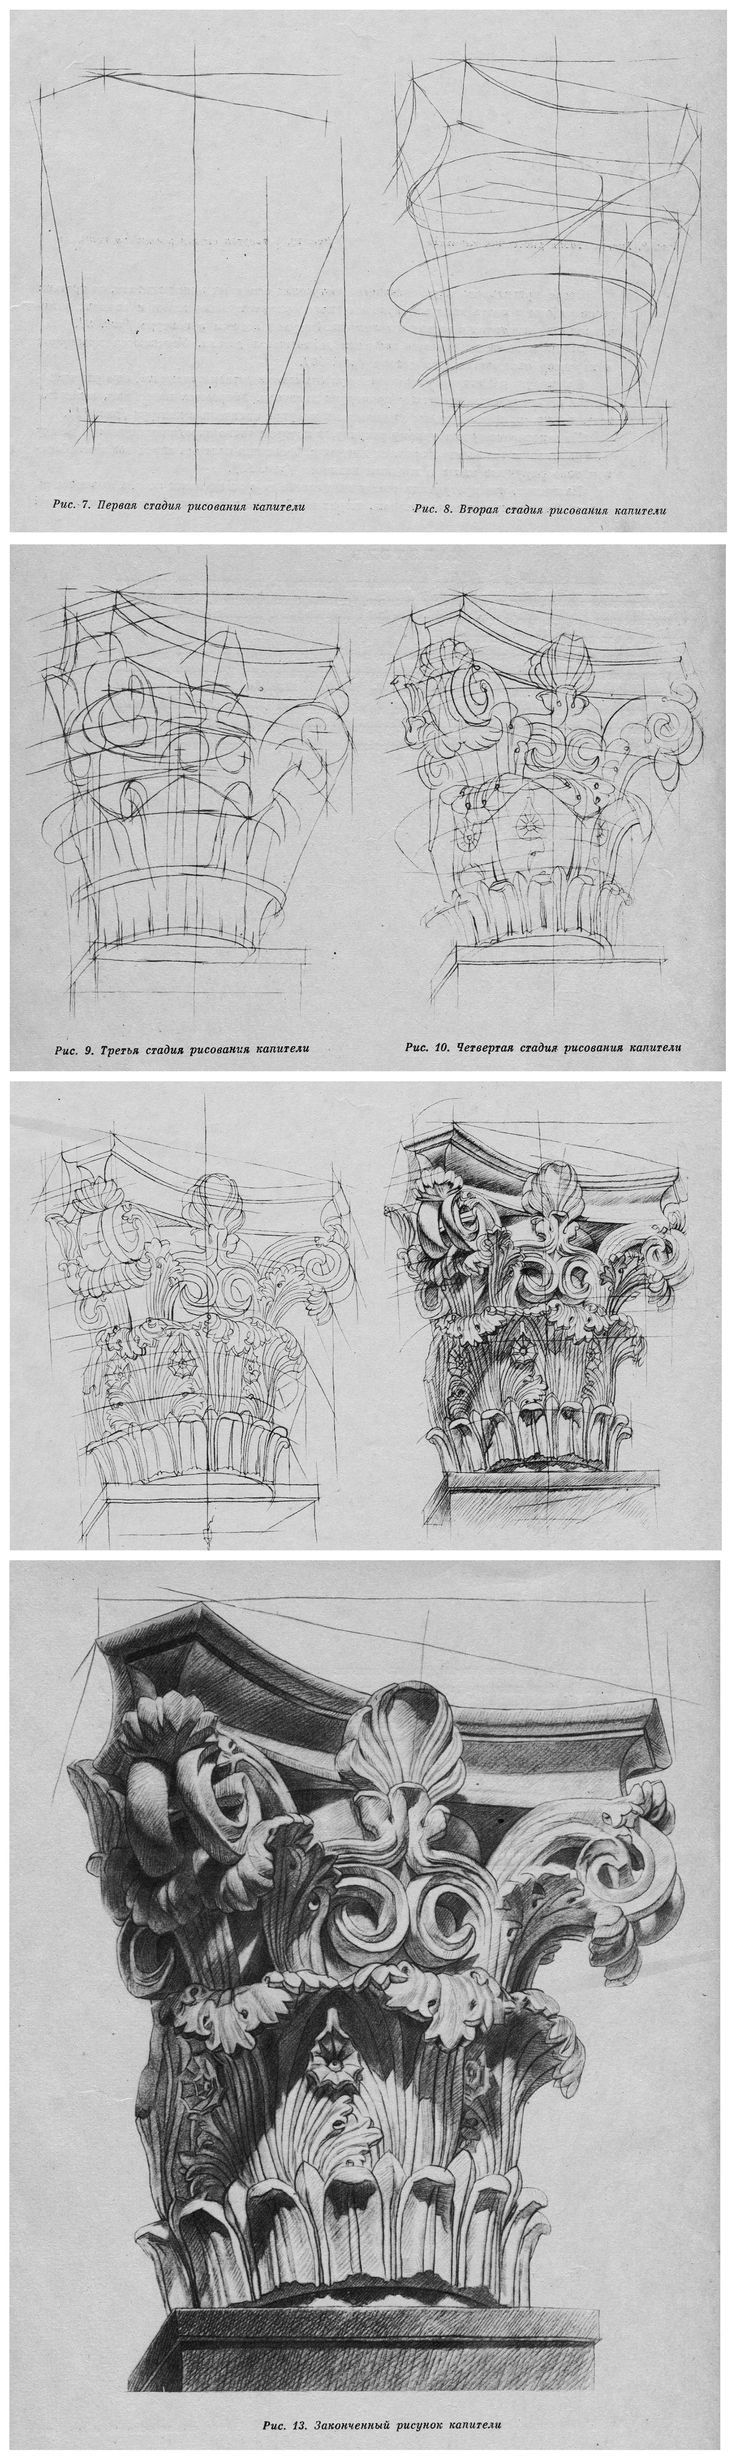 Scribble Stage Of Drawing : Stages of drawing capital chapiter architecture